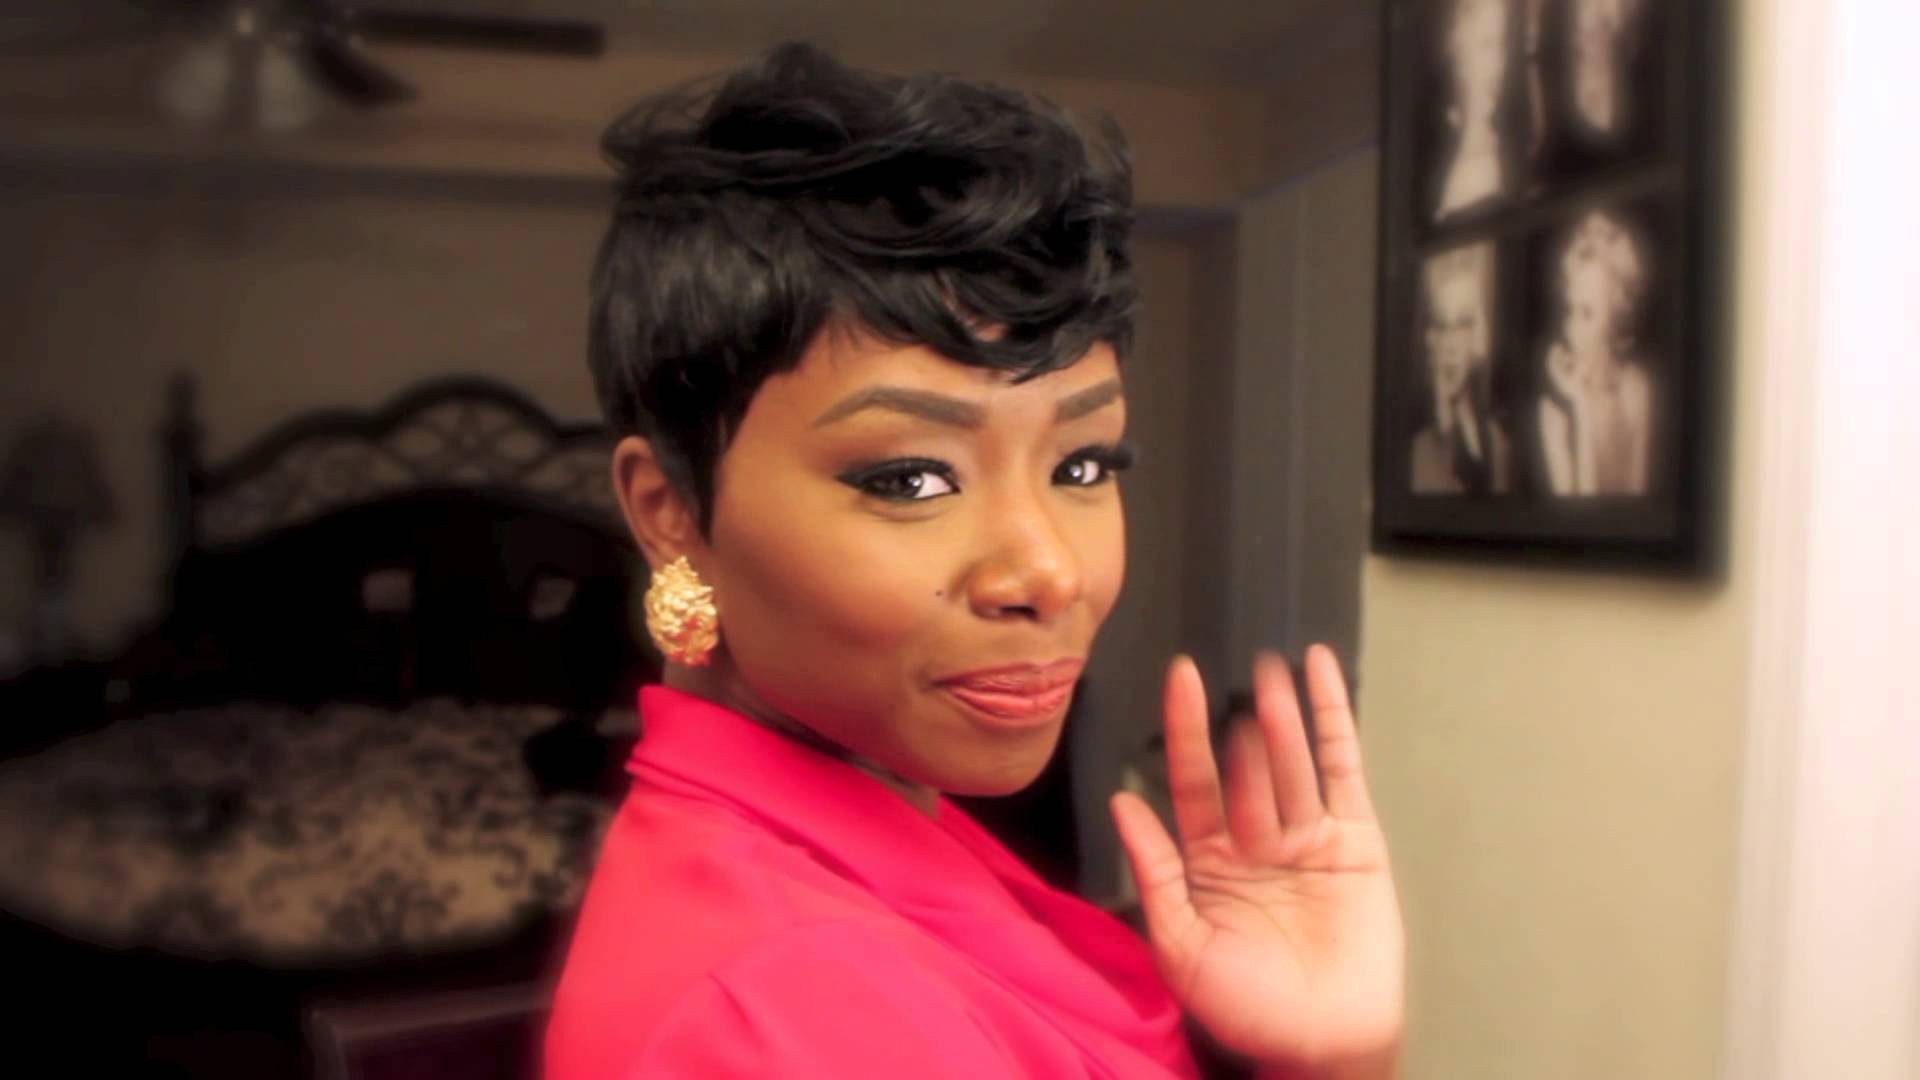 27 Piece Weave Short Hairstyle  Black Women With Middle Part Hairstyles